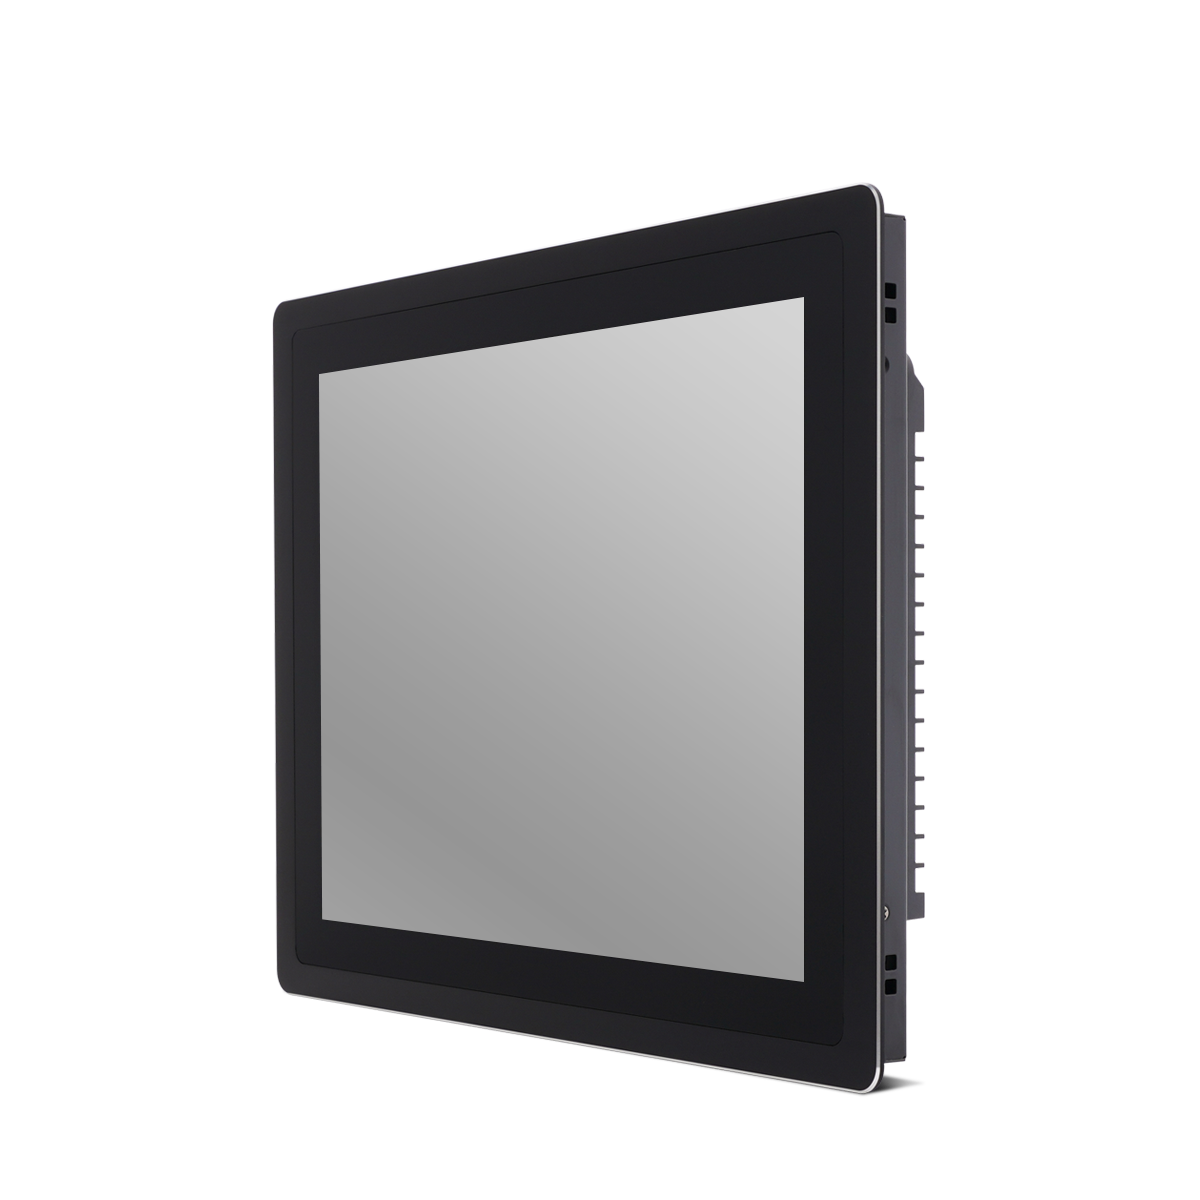 13.3 inch 10-points Capactive Touch Screen   Resun EB-133SY